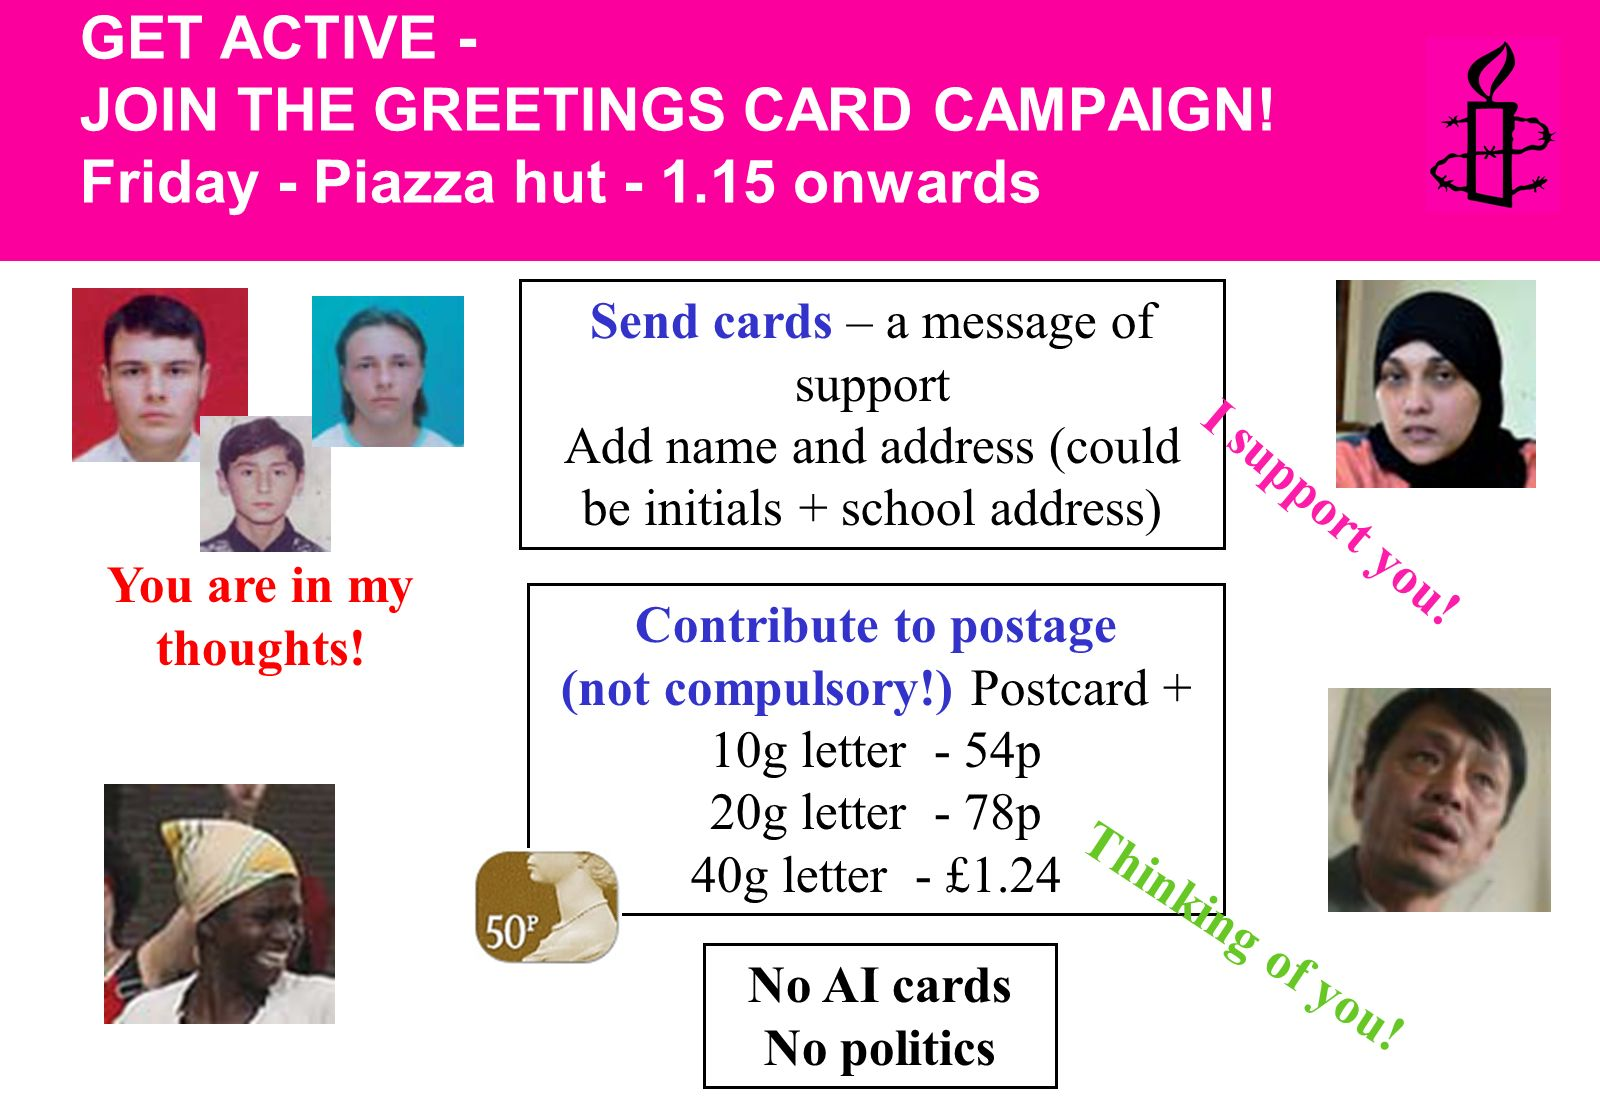 Send cards – a message of support Add name and address (could be initials + school address) No AI cards No politics Contribute to postage (not compulsory!) Postcard + 10g letter - 54p 20g letter - 78p 40g letter - £1.24 You are in my thoughts.